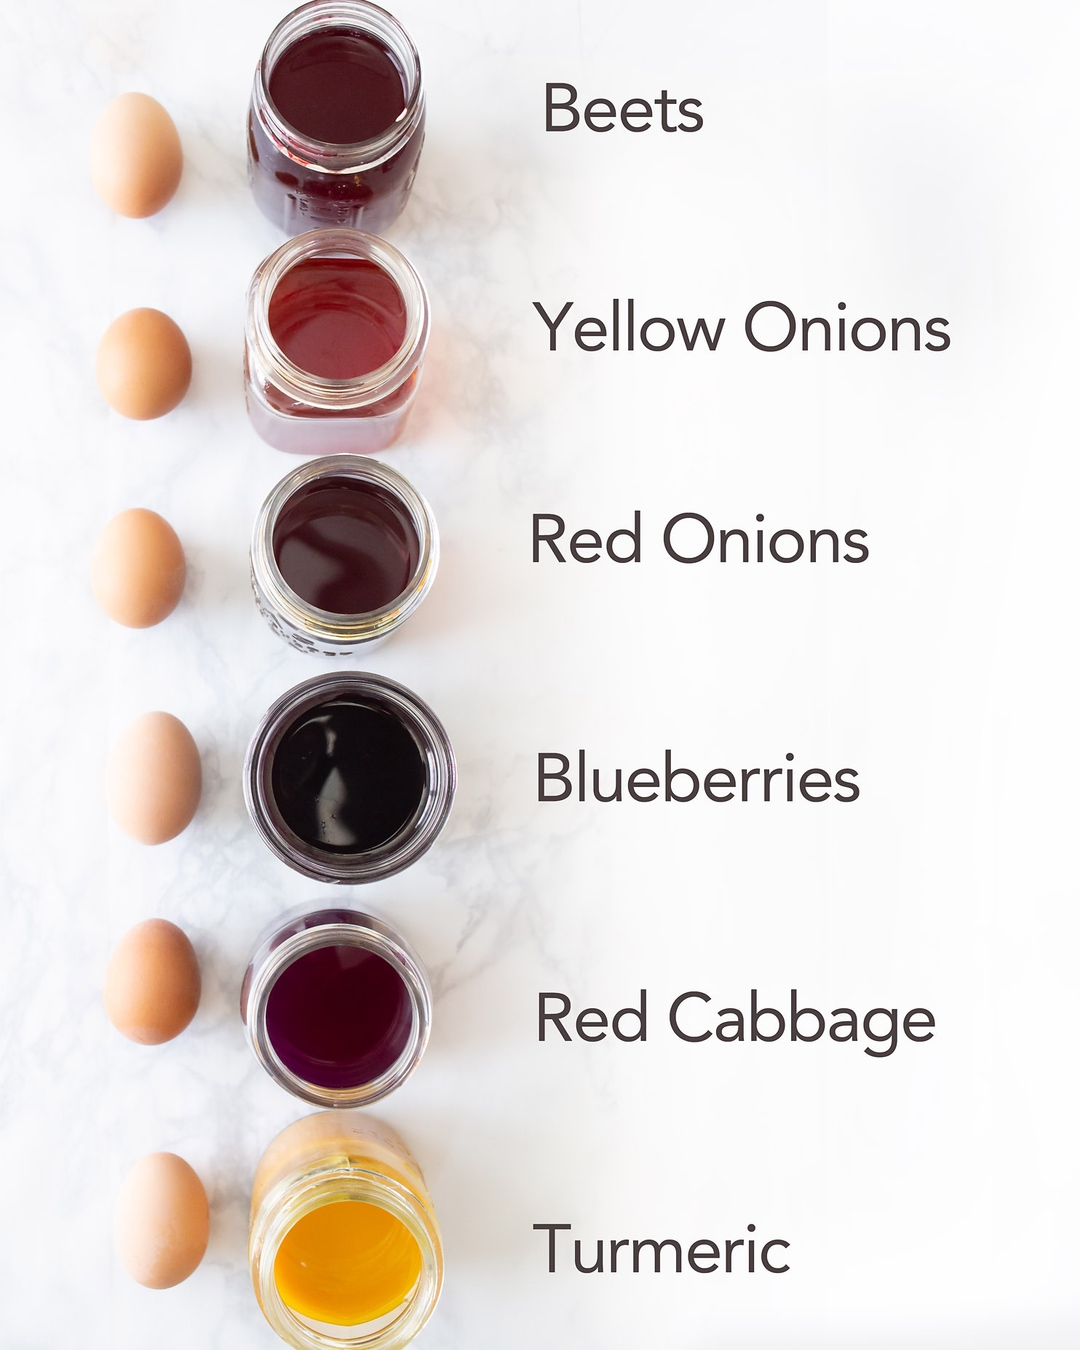 dye-eggs-web-ingredients-2